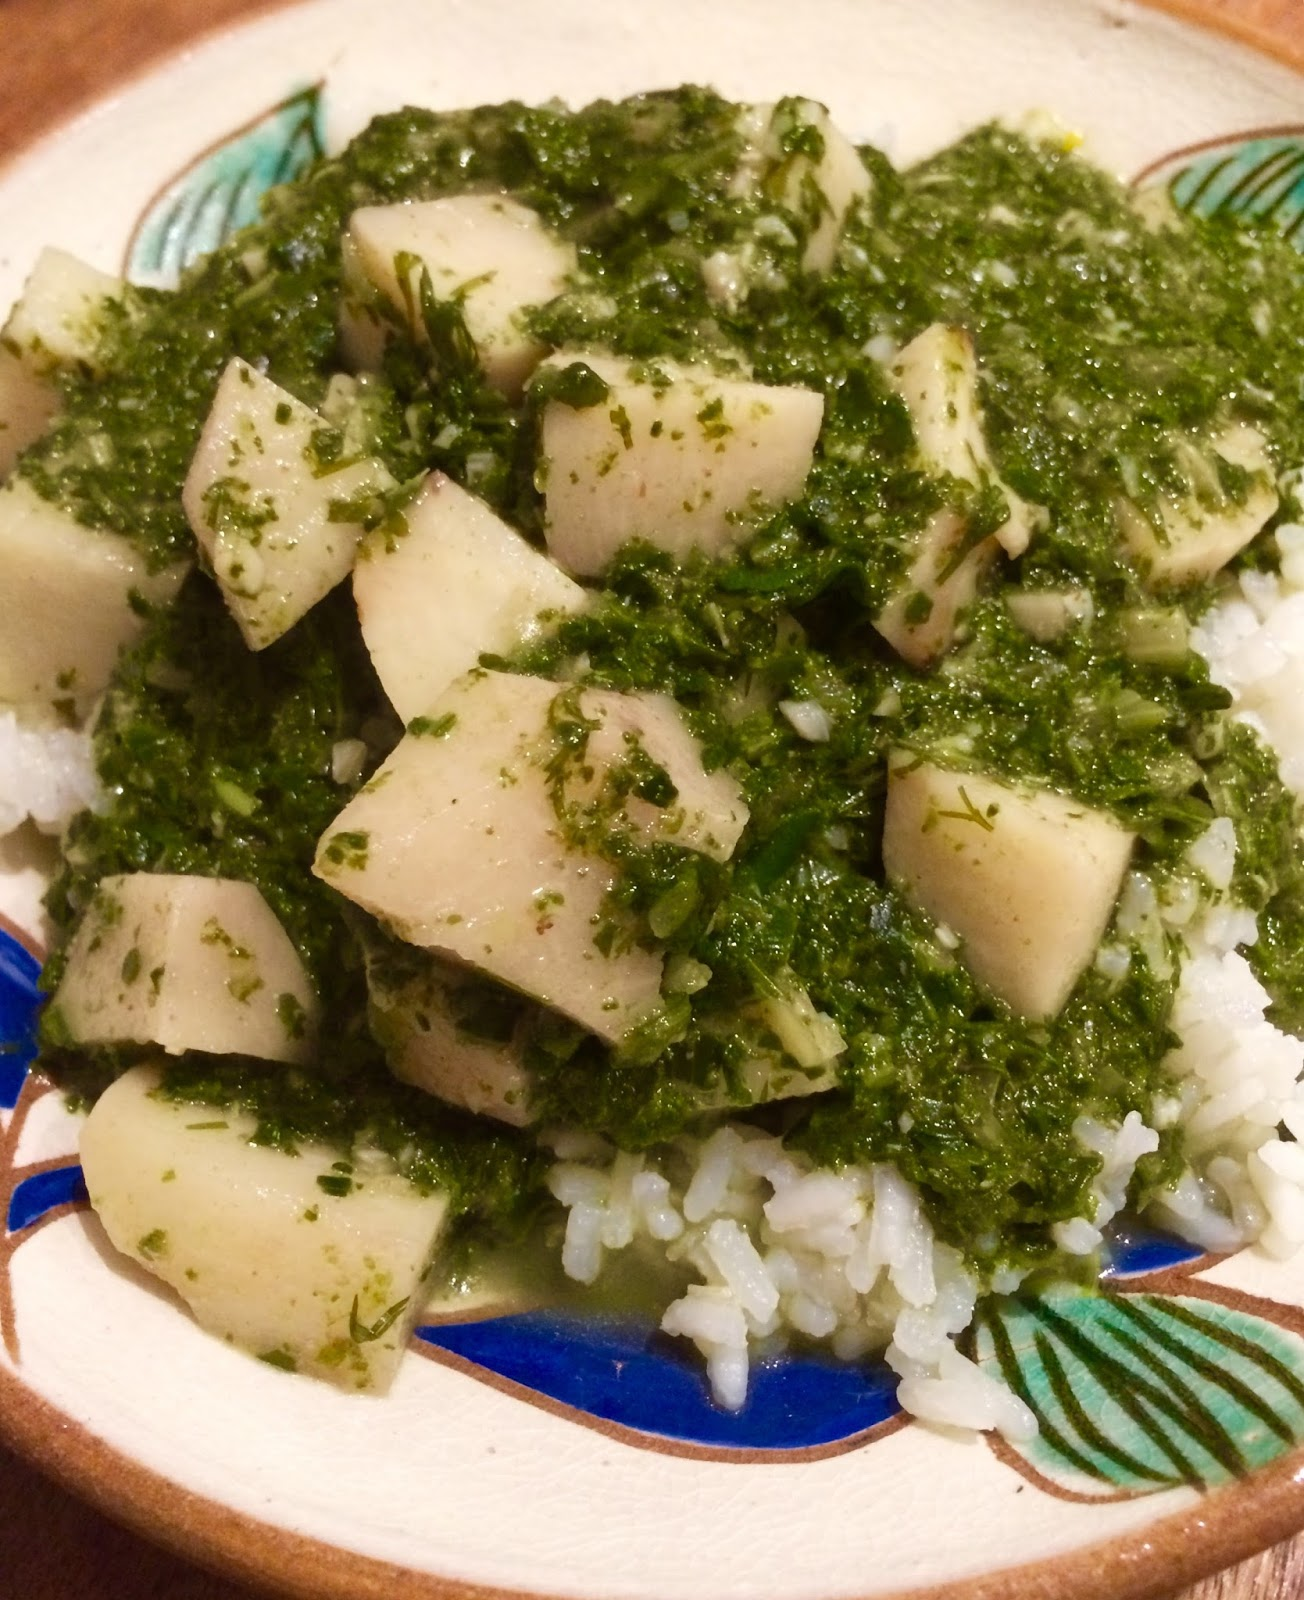 The egyptian kitchen dinner olass wa sal qolqass wa salq ive been trying to chase down this recipe for months now though i ate it back in 2010 for the first time during christmas dinner in cairo forumfinder Image collections